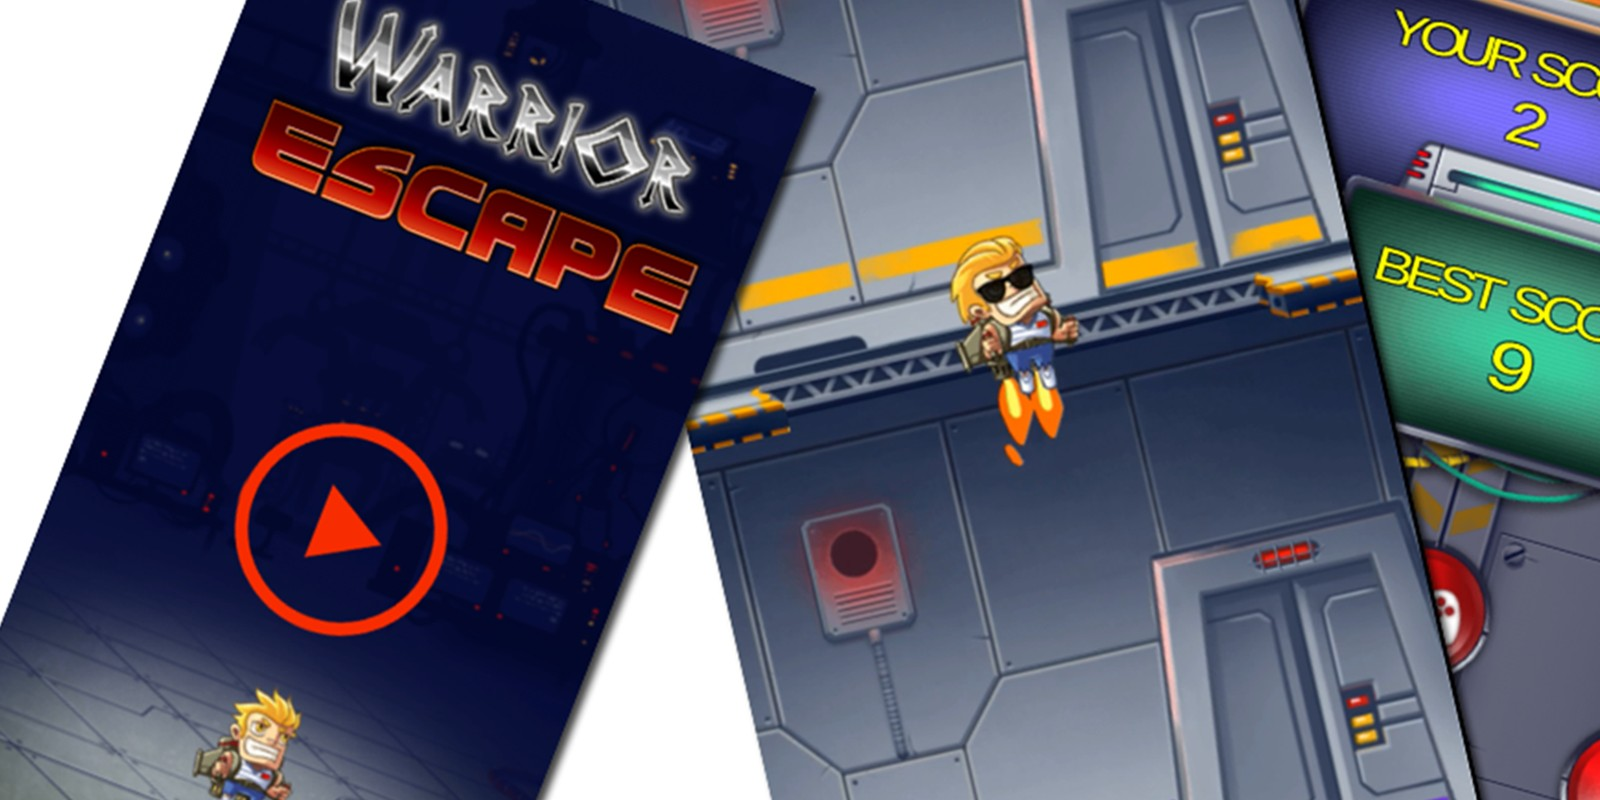 Warrior Escape Unity Complete Project